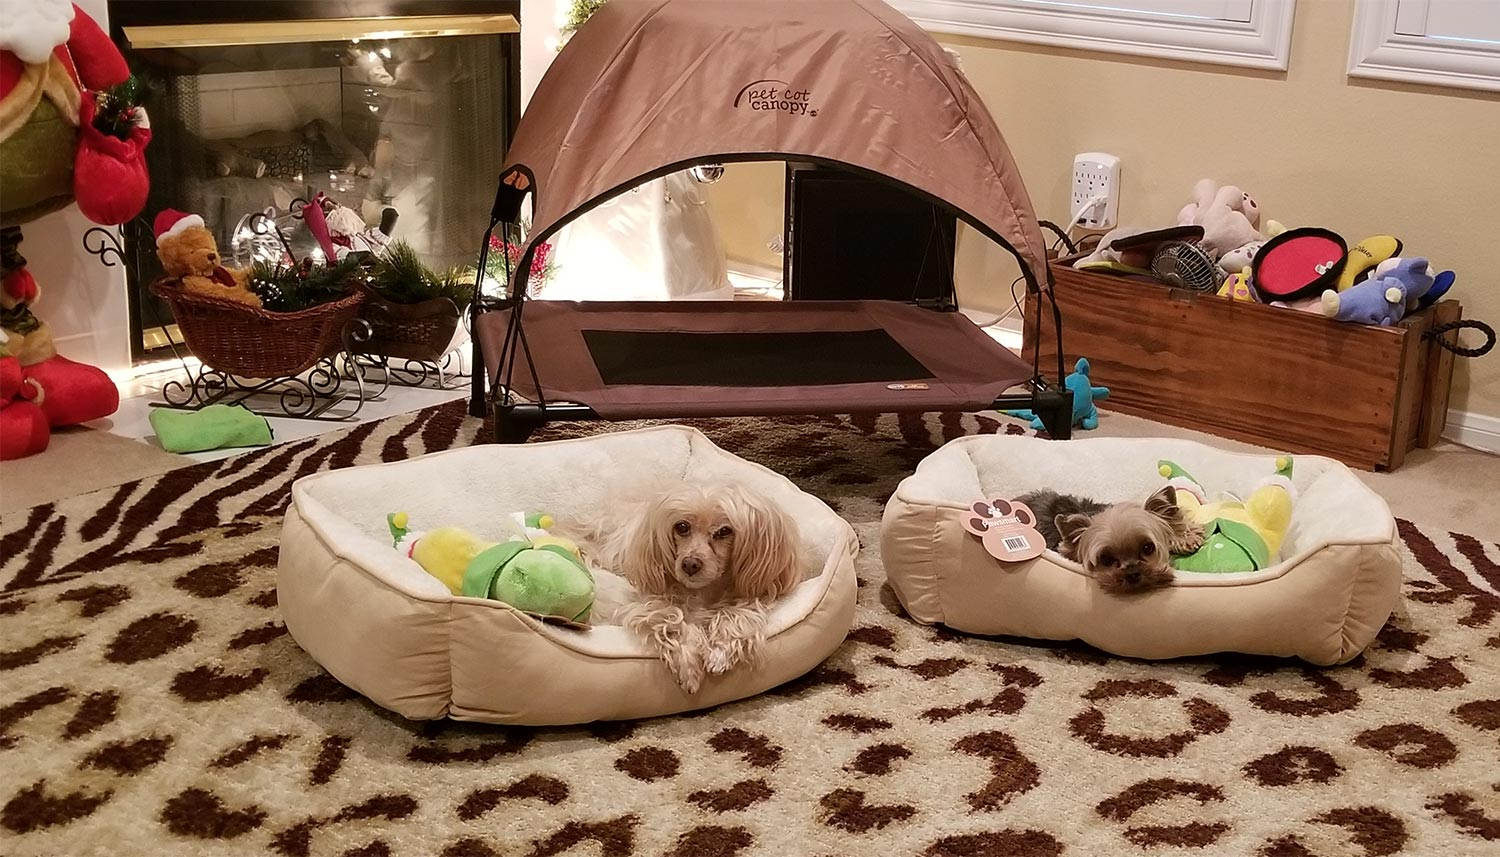 Pamela G. in Menifee, CA sent a picture of her two furry family members, Chipper and William, in their dog beds, each with a new toy from Santa Paws!